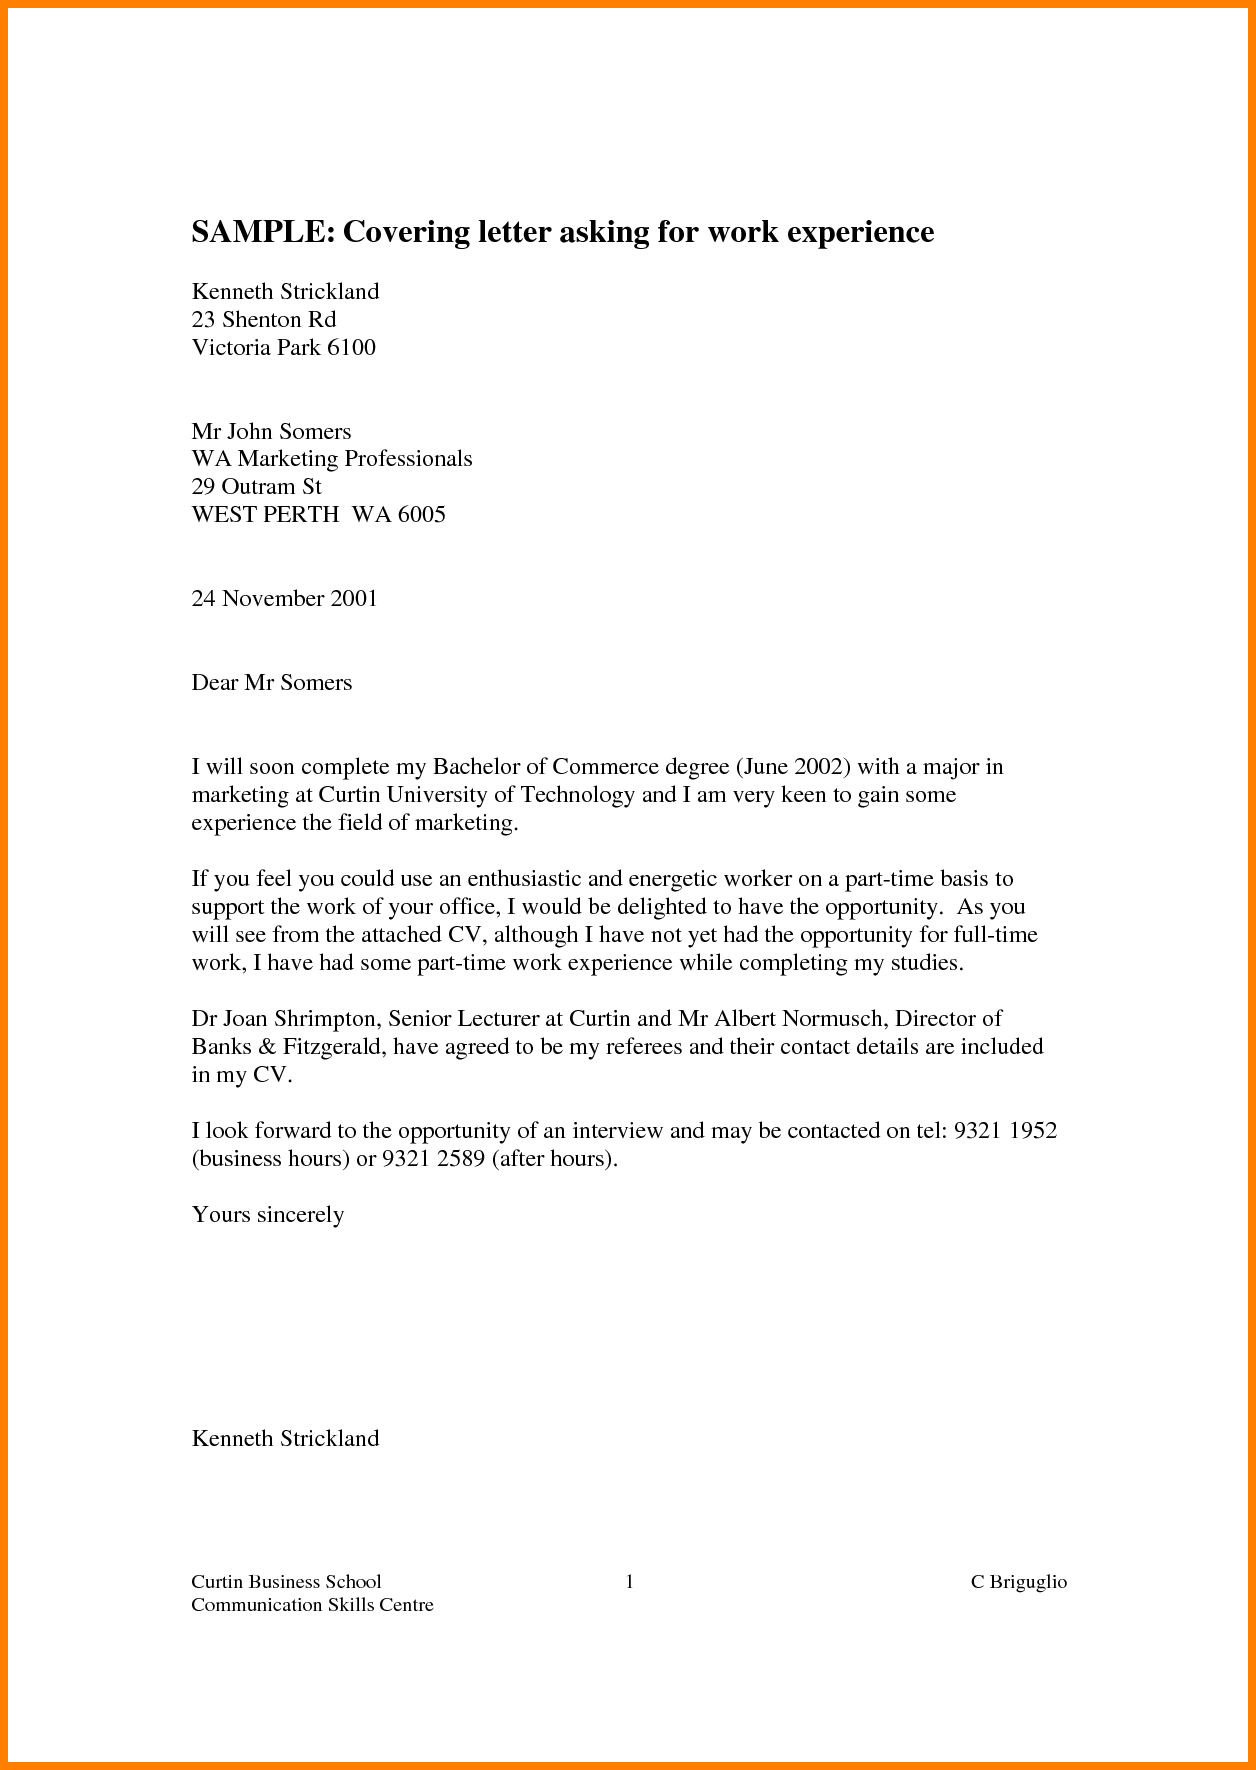 Business Letter Work Experience Sample Covering Asking Request